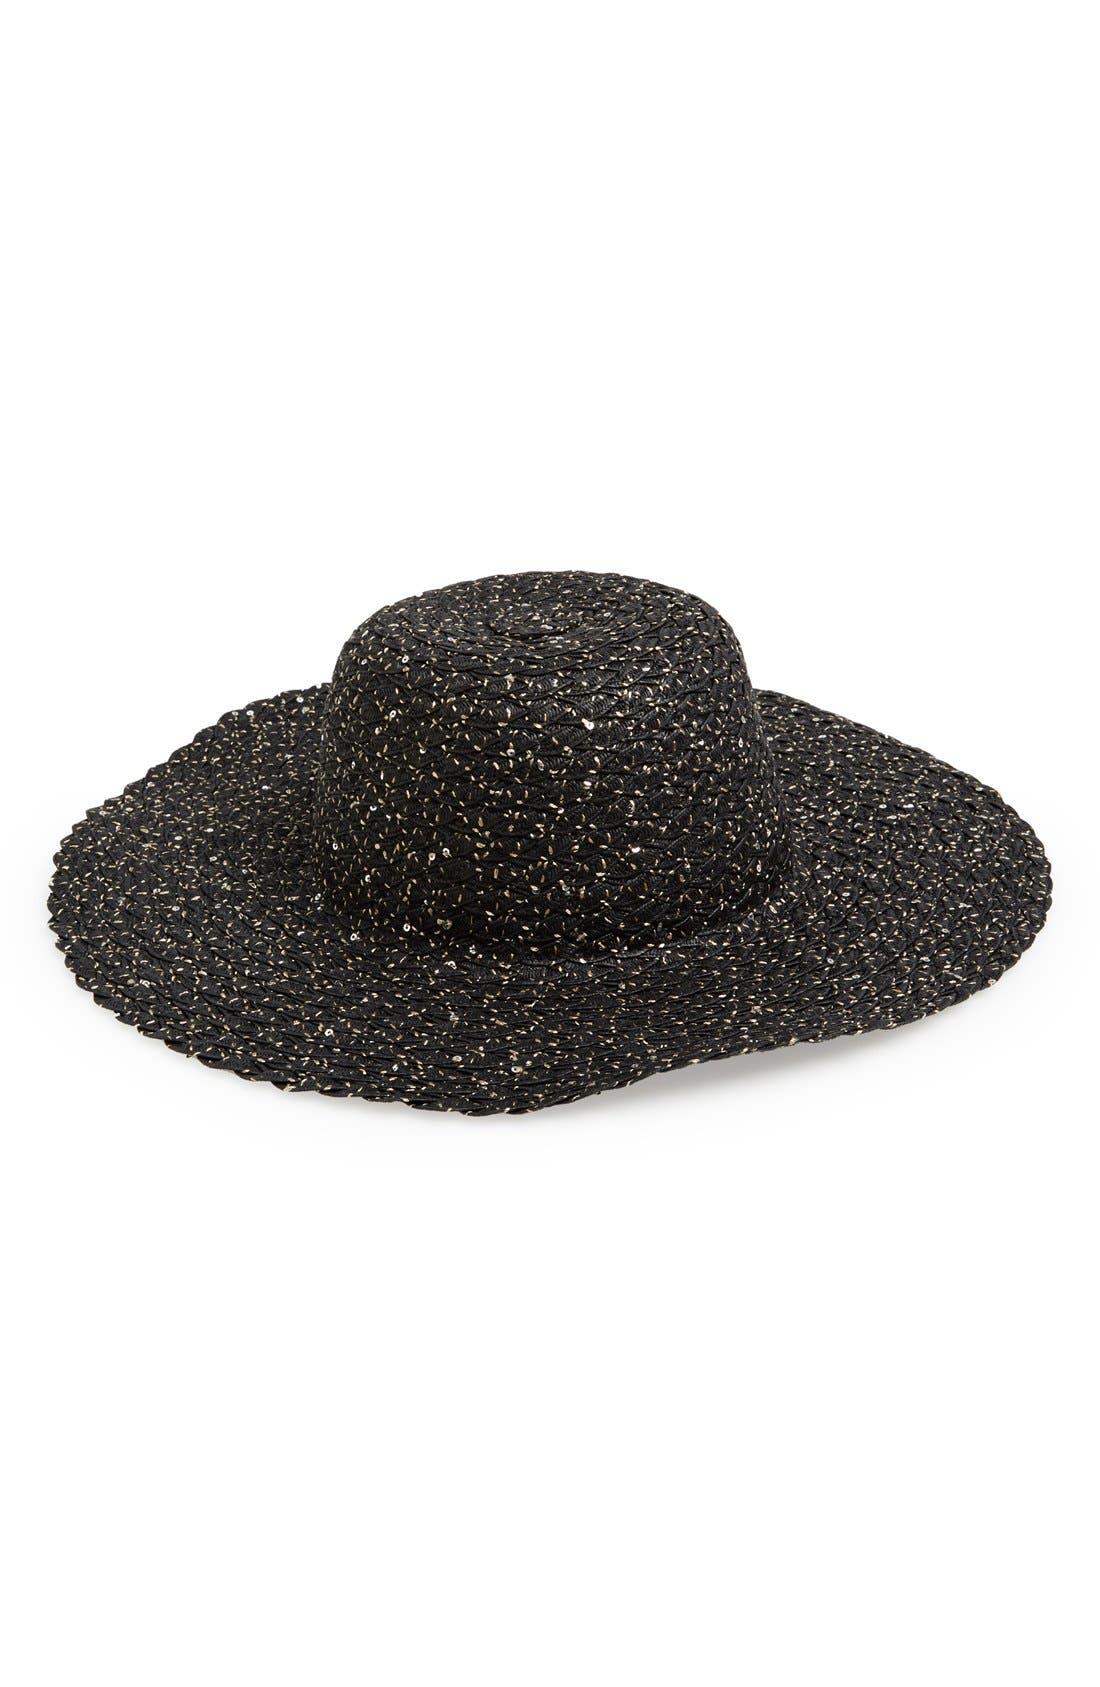 Main Image - August Hat 'Shiny Discovery' Floppy Hat